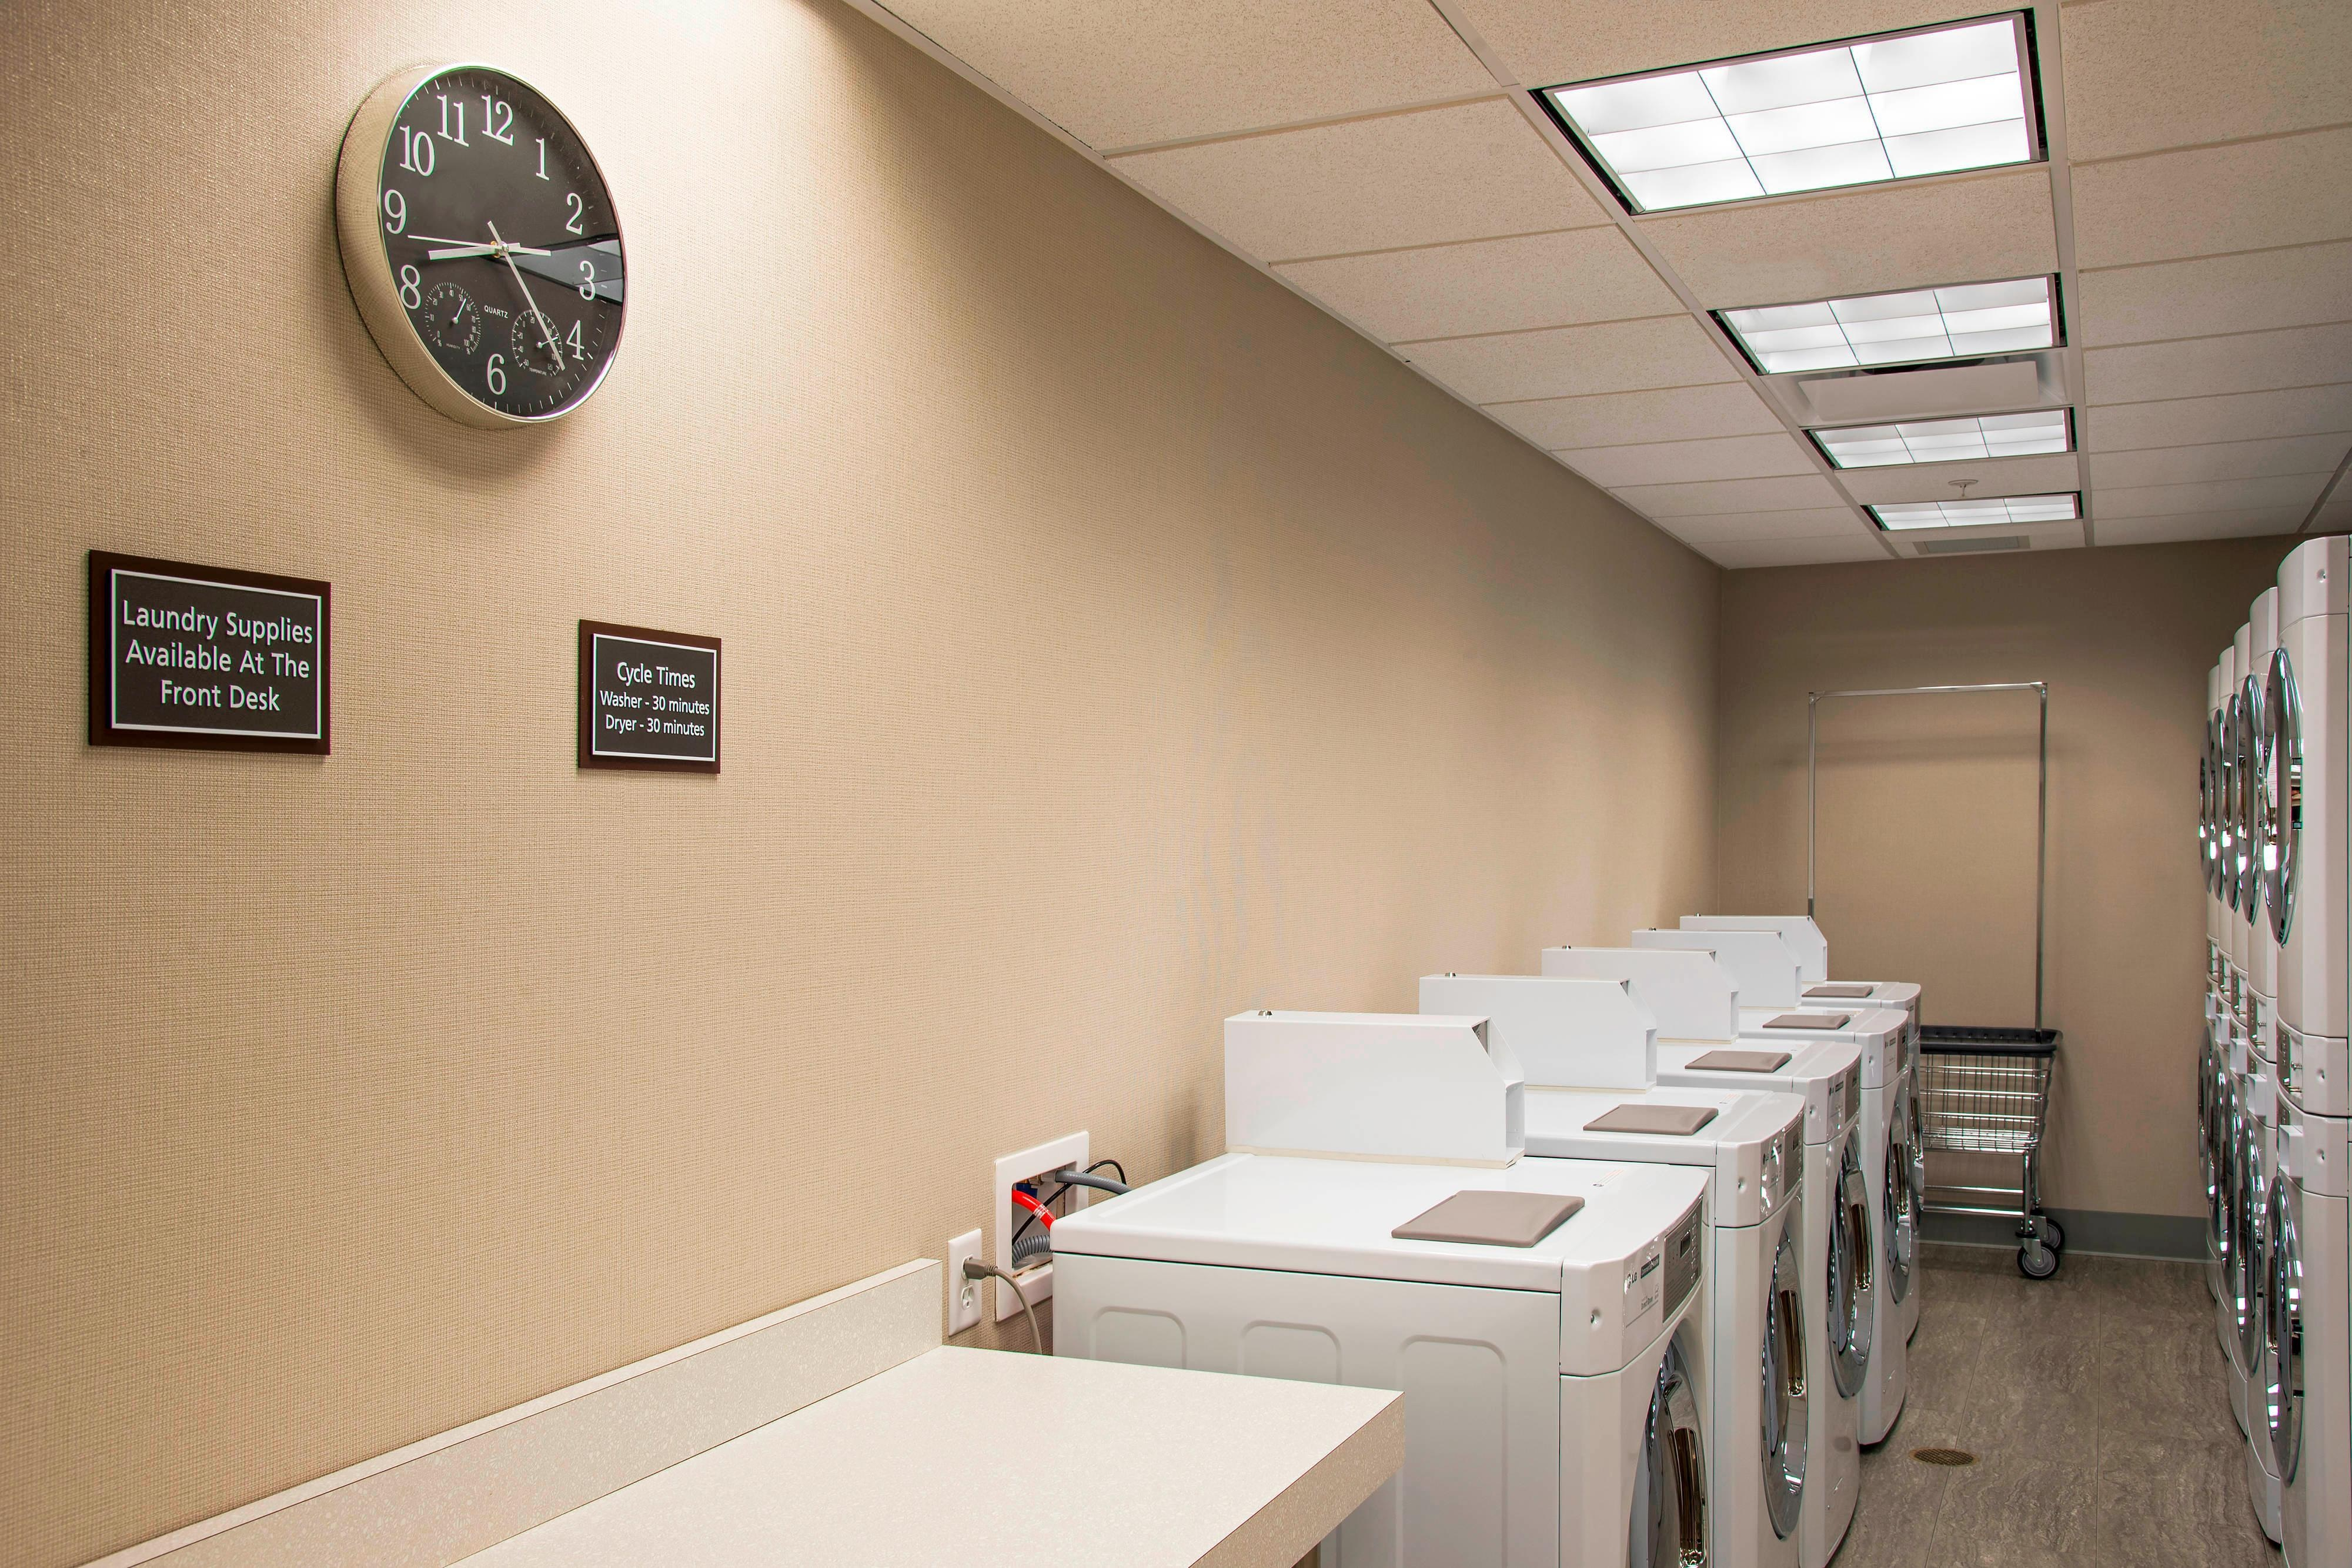 Guest Laundry with Washers and Dryers